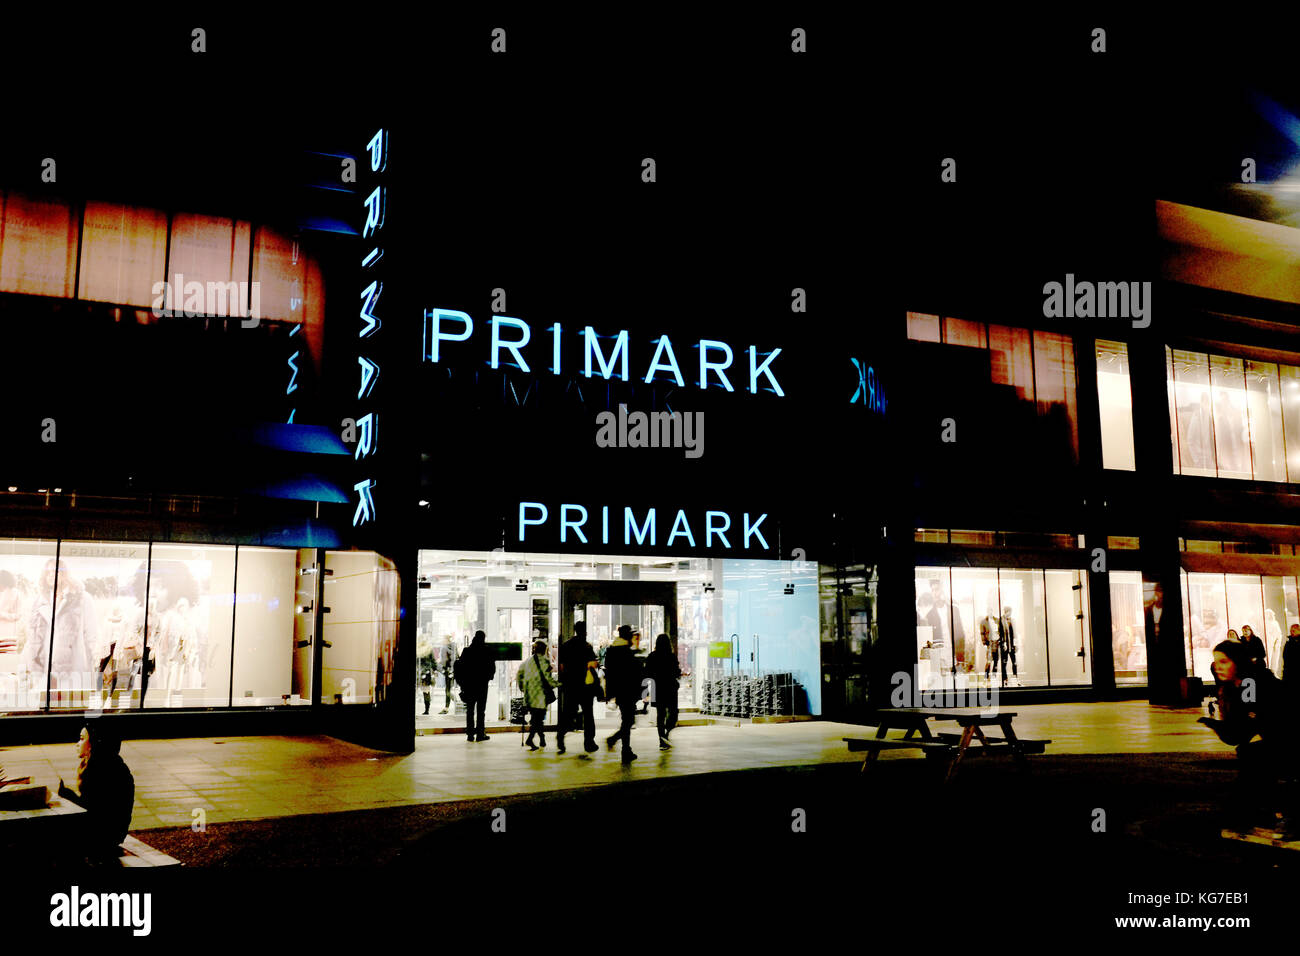 primark discount retail shop in westwood cross shopping centre county of kent uk november 2017 - Stock Image